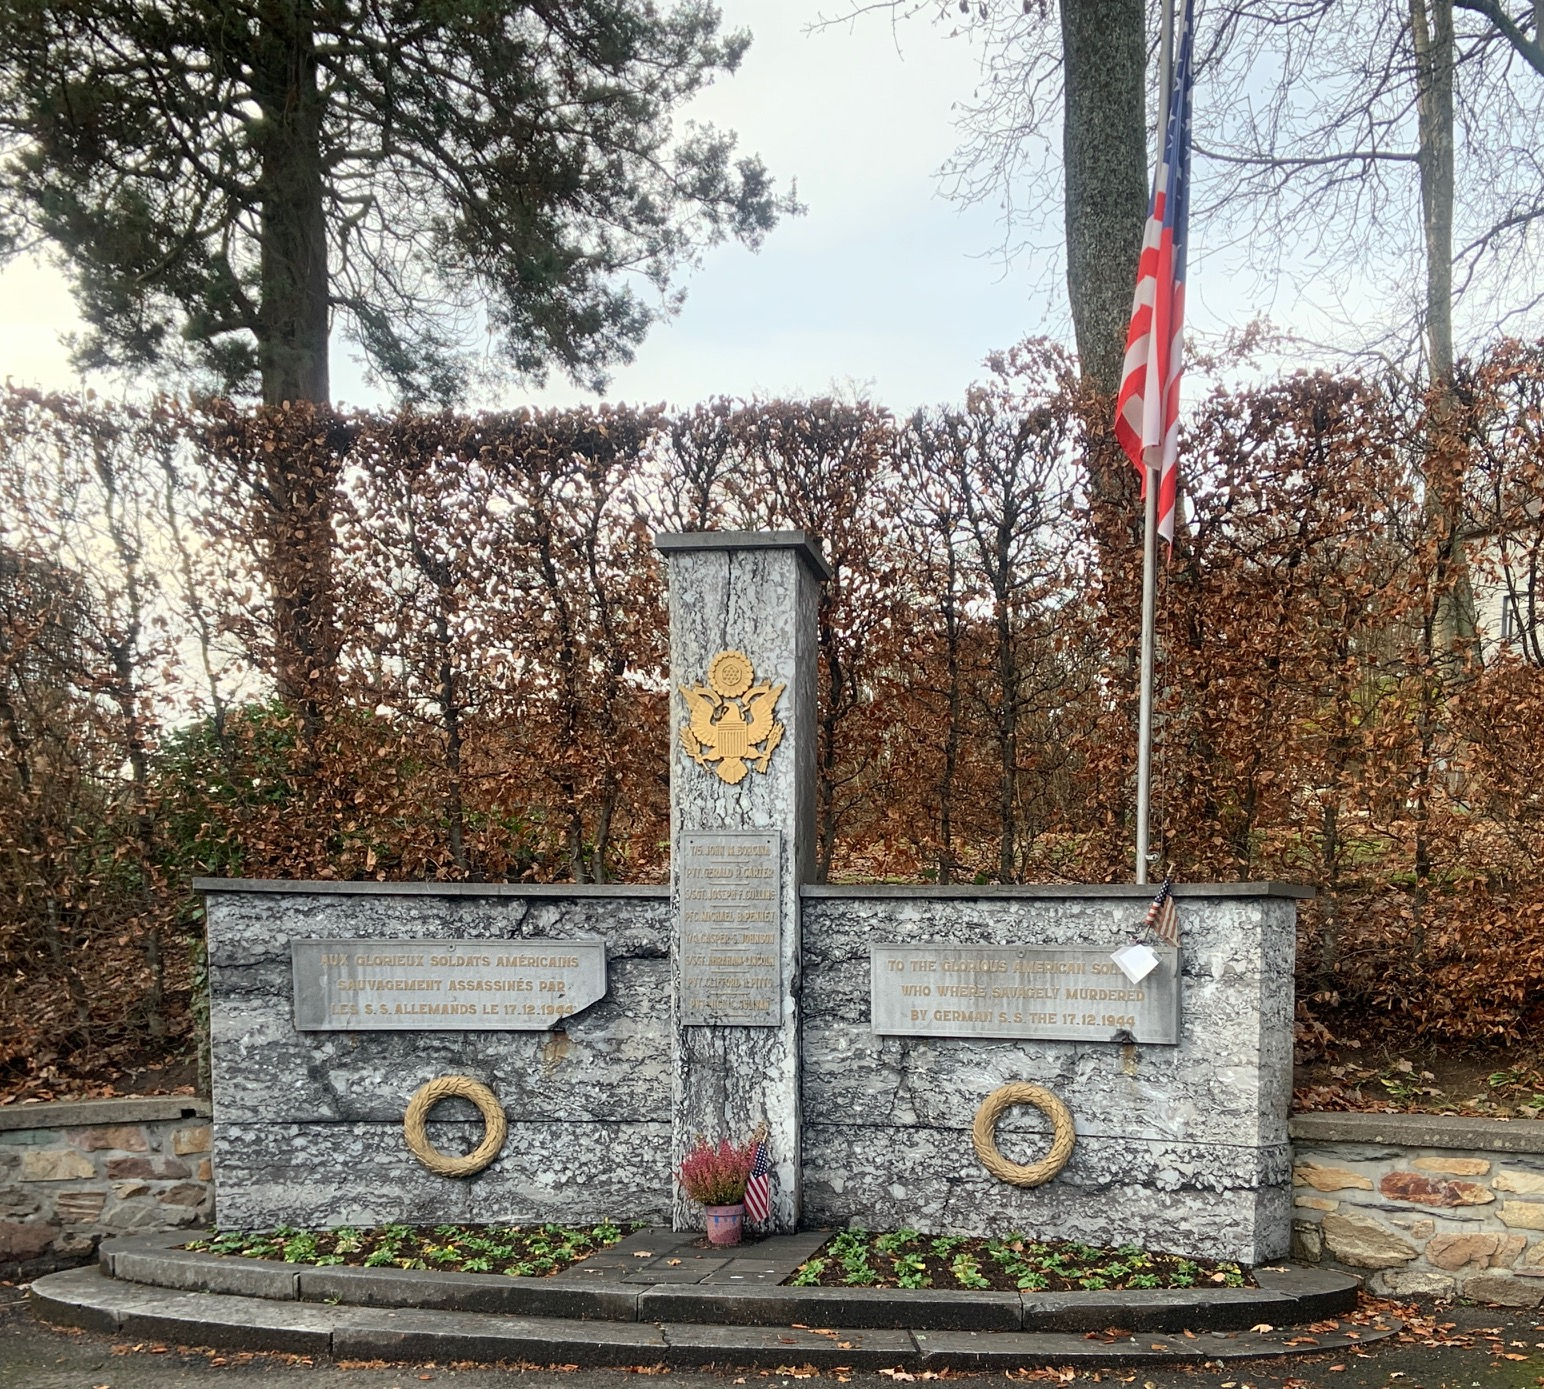 Memorial to the American soldiers massacred in Malmedy, Belgium, by the German SS. Virginia Kruta/The Daily Caller